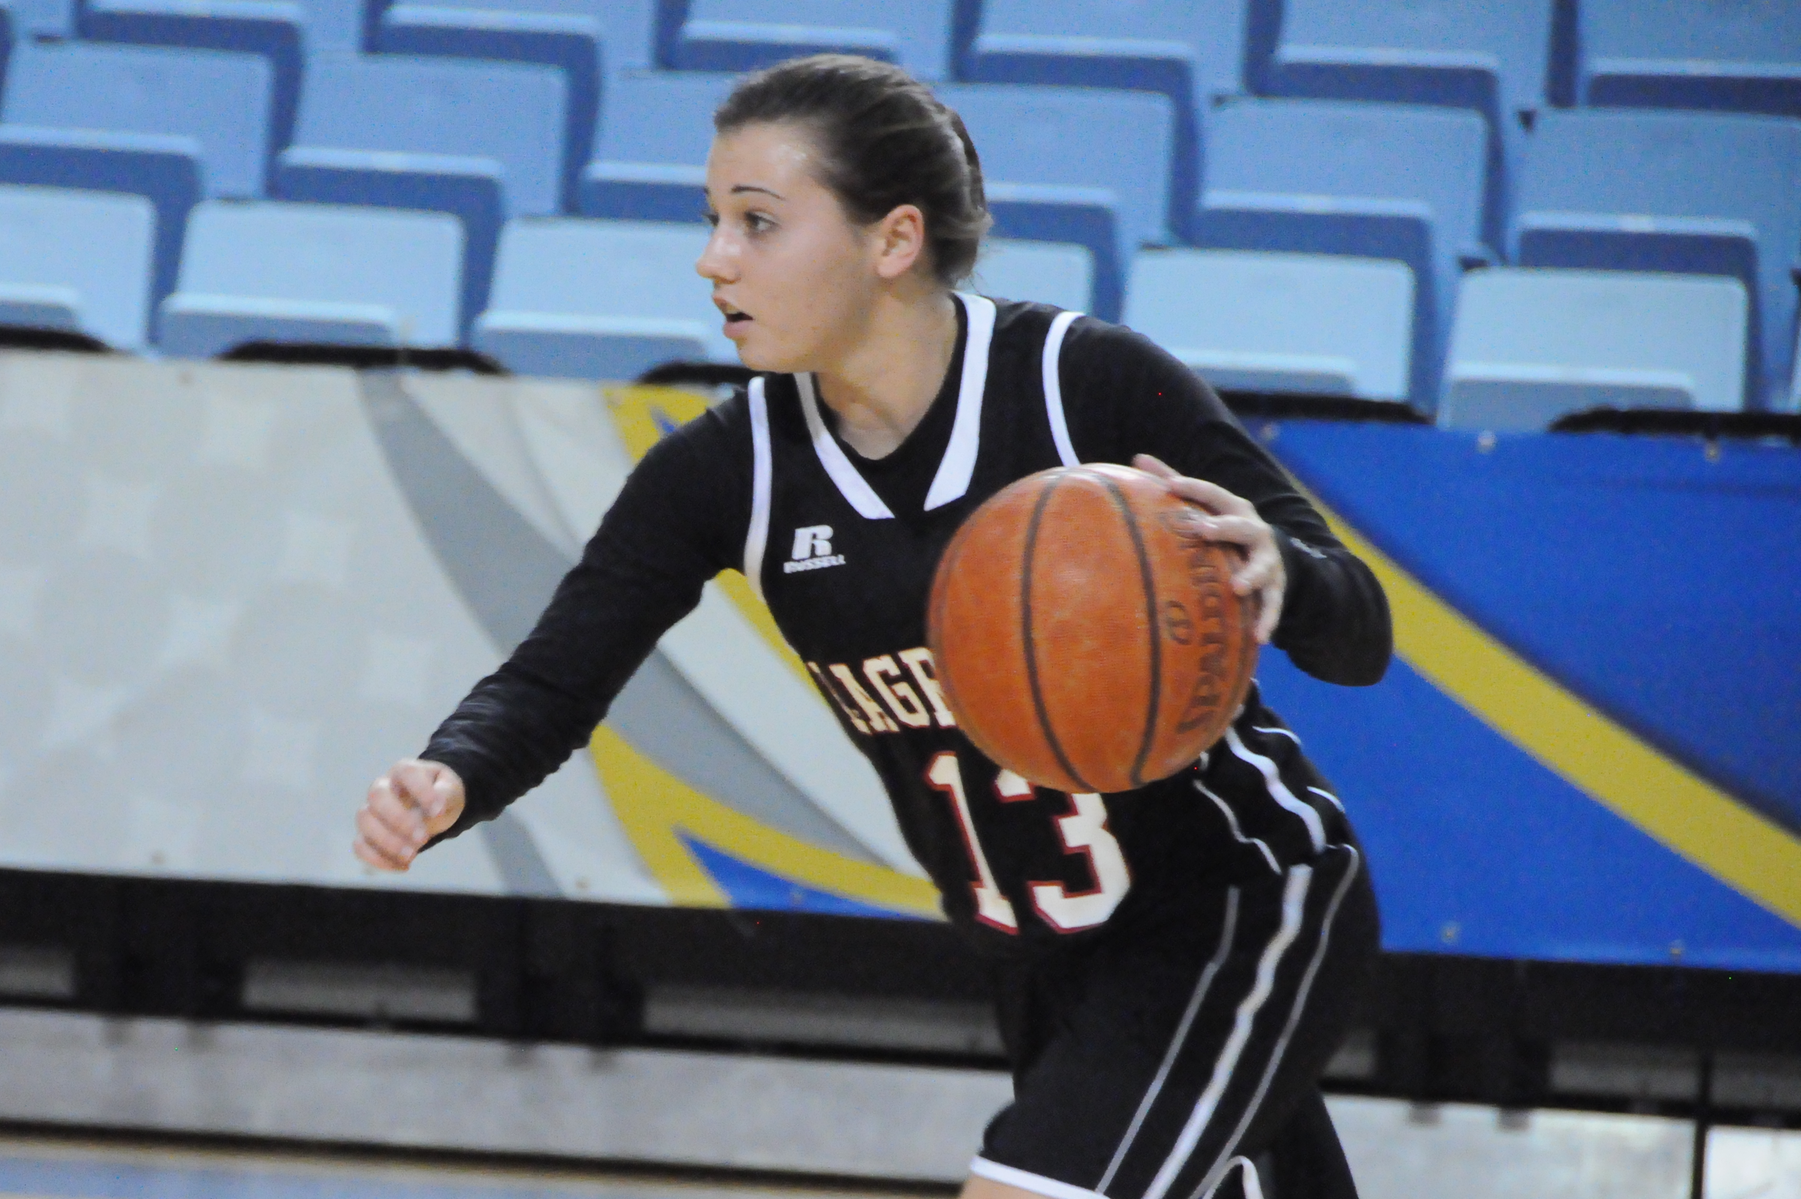 Women's Basketball: Panthers hold off fourth quarter rally by Salem for 72-70 win